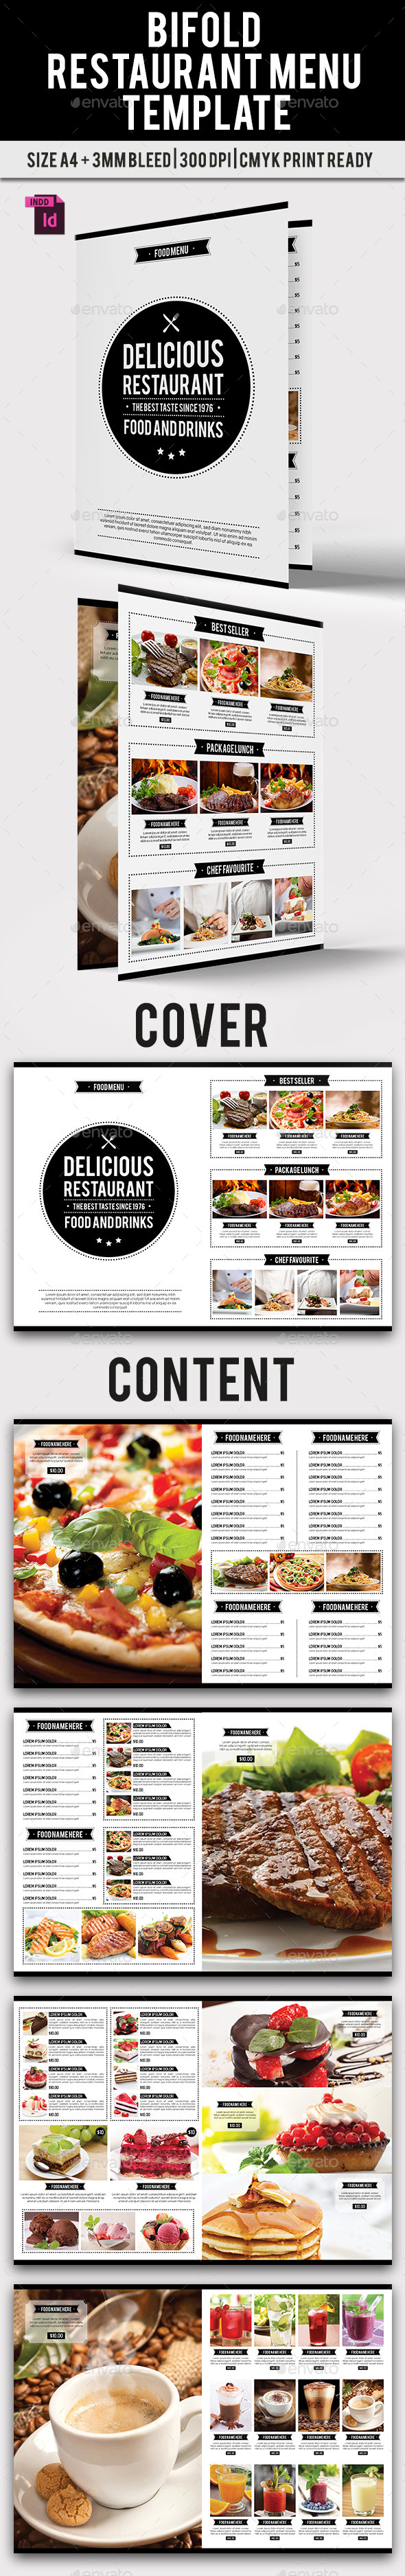 BiFold Restaurant Menu Vol. 9 - Food Menus Print Templates